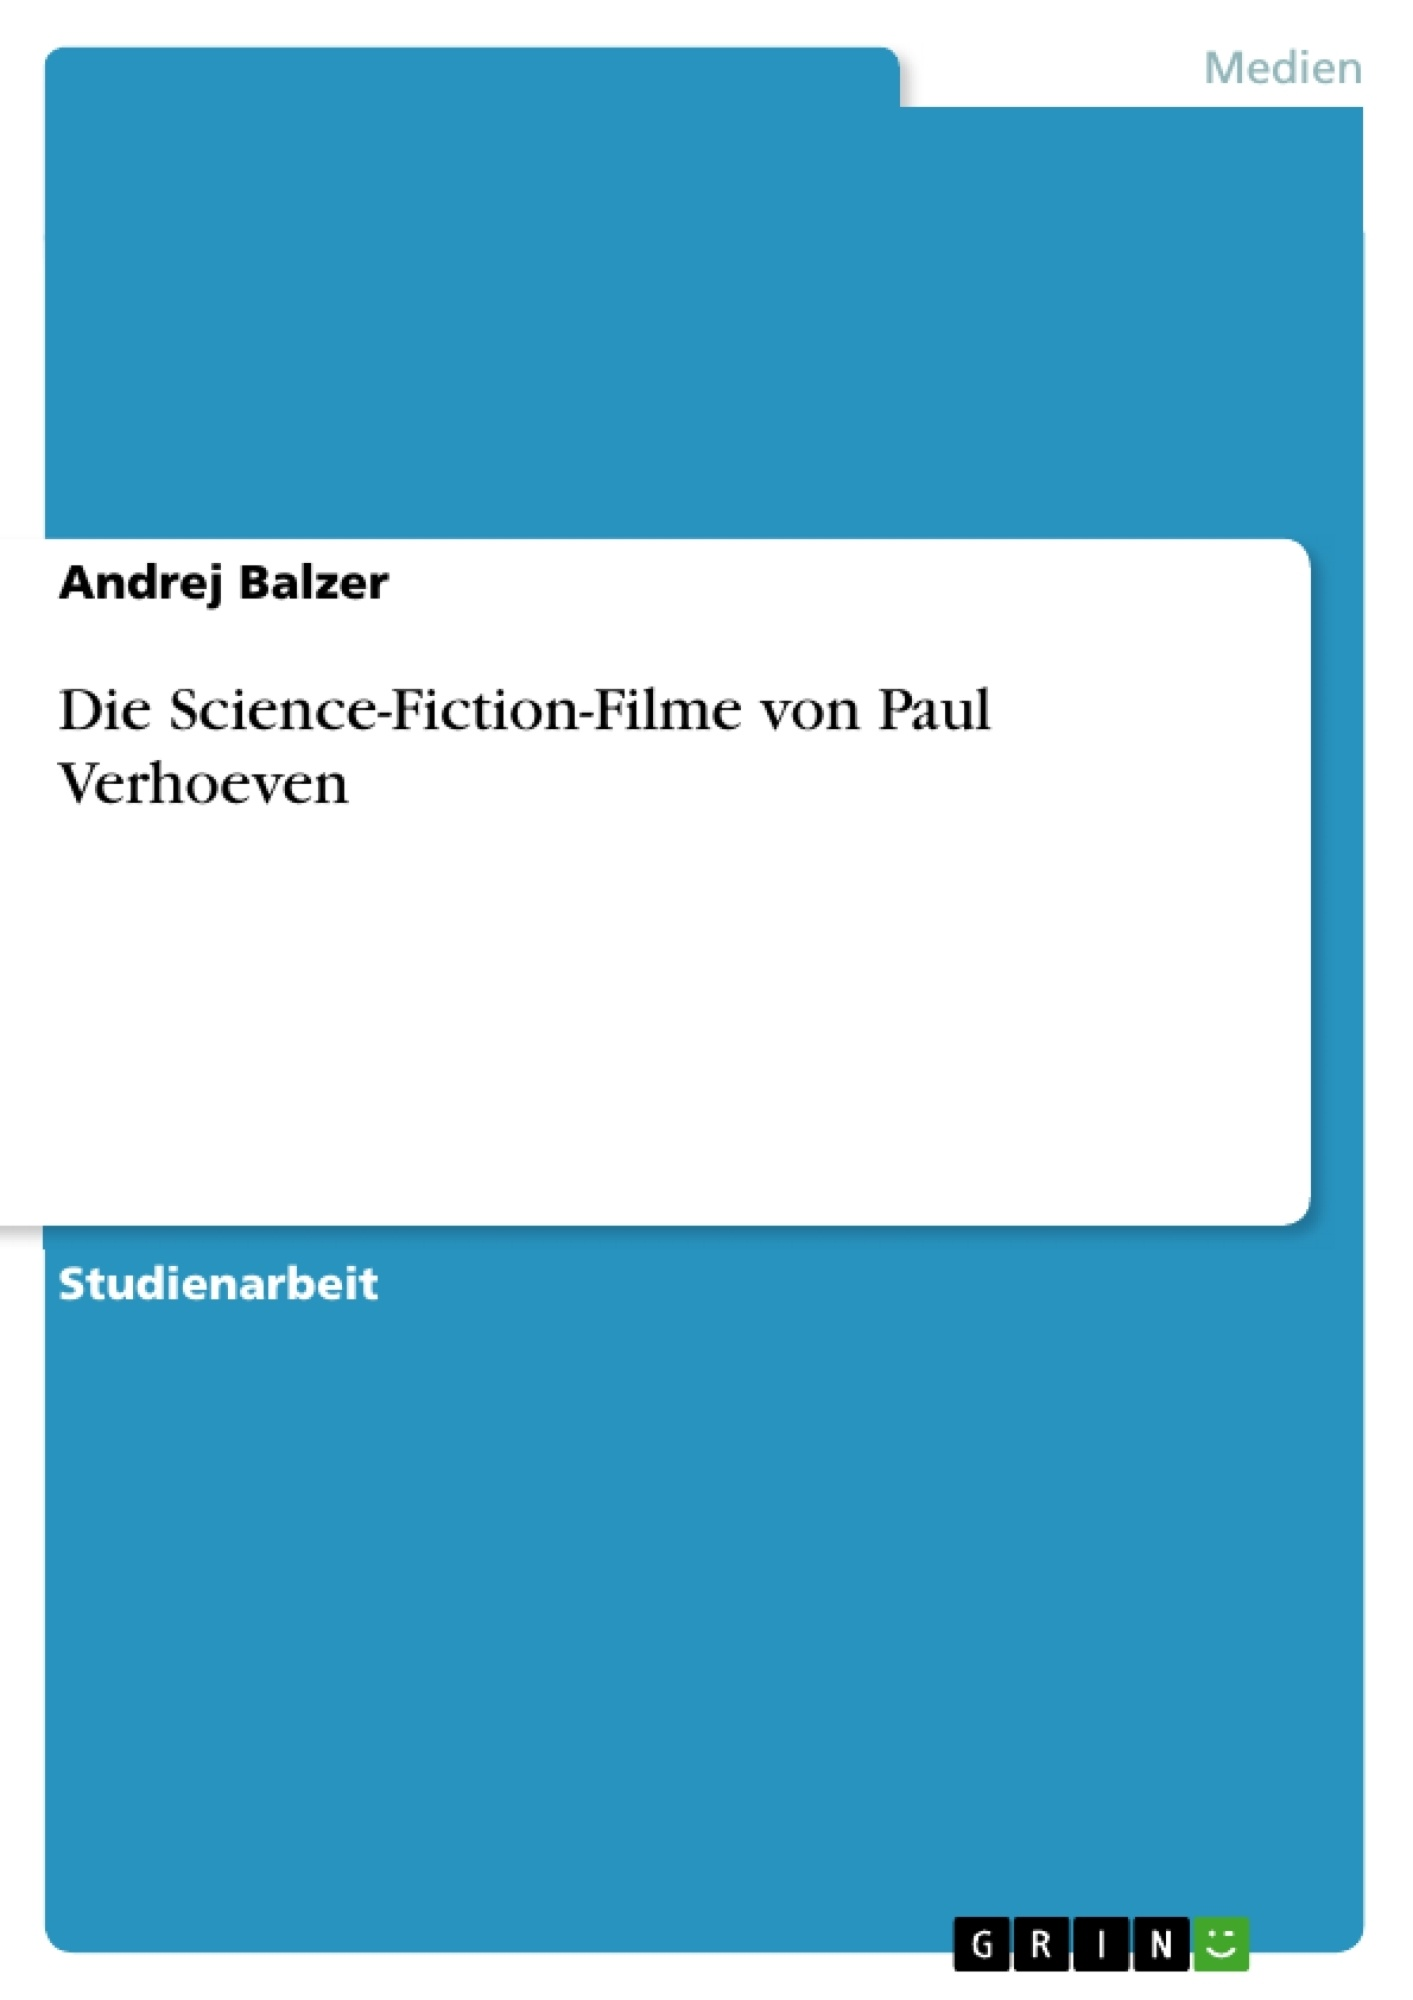 Titel: Die Science-Fiction-Filme von Paul Verhoeven